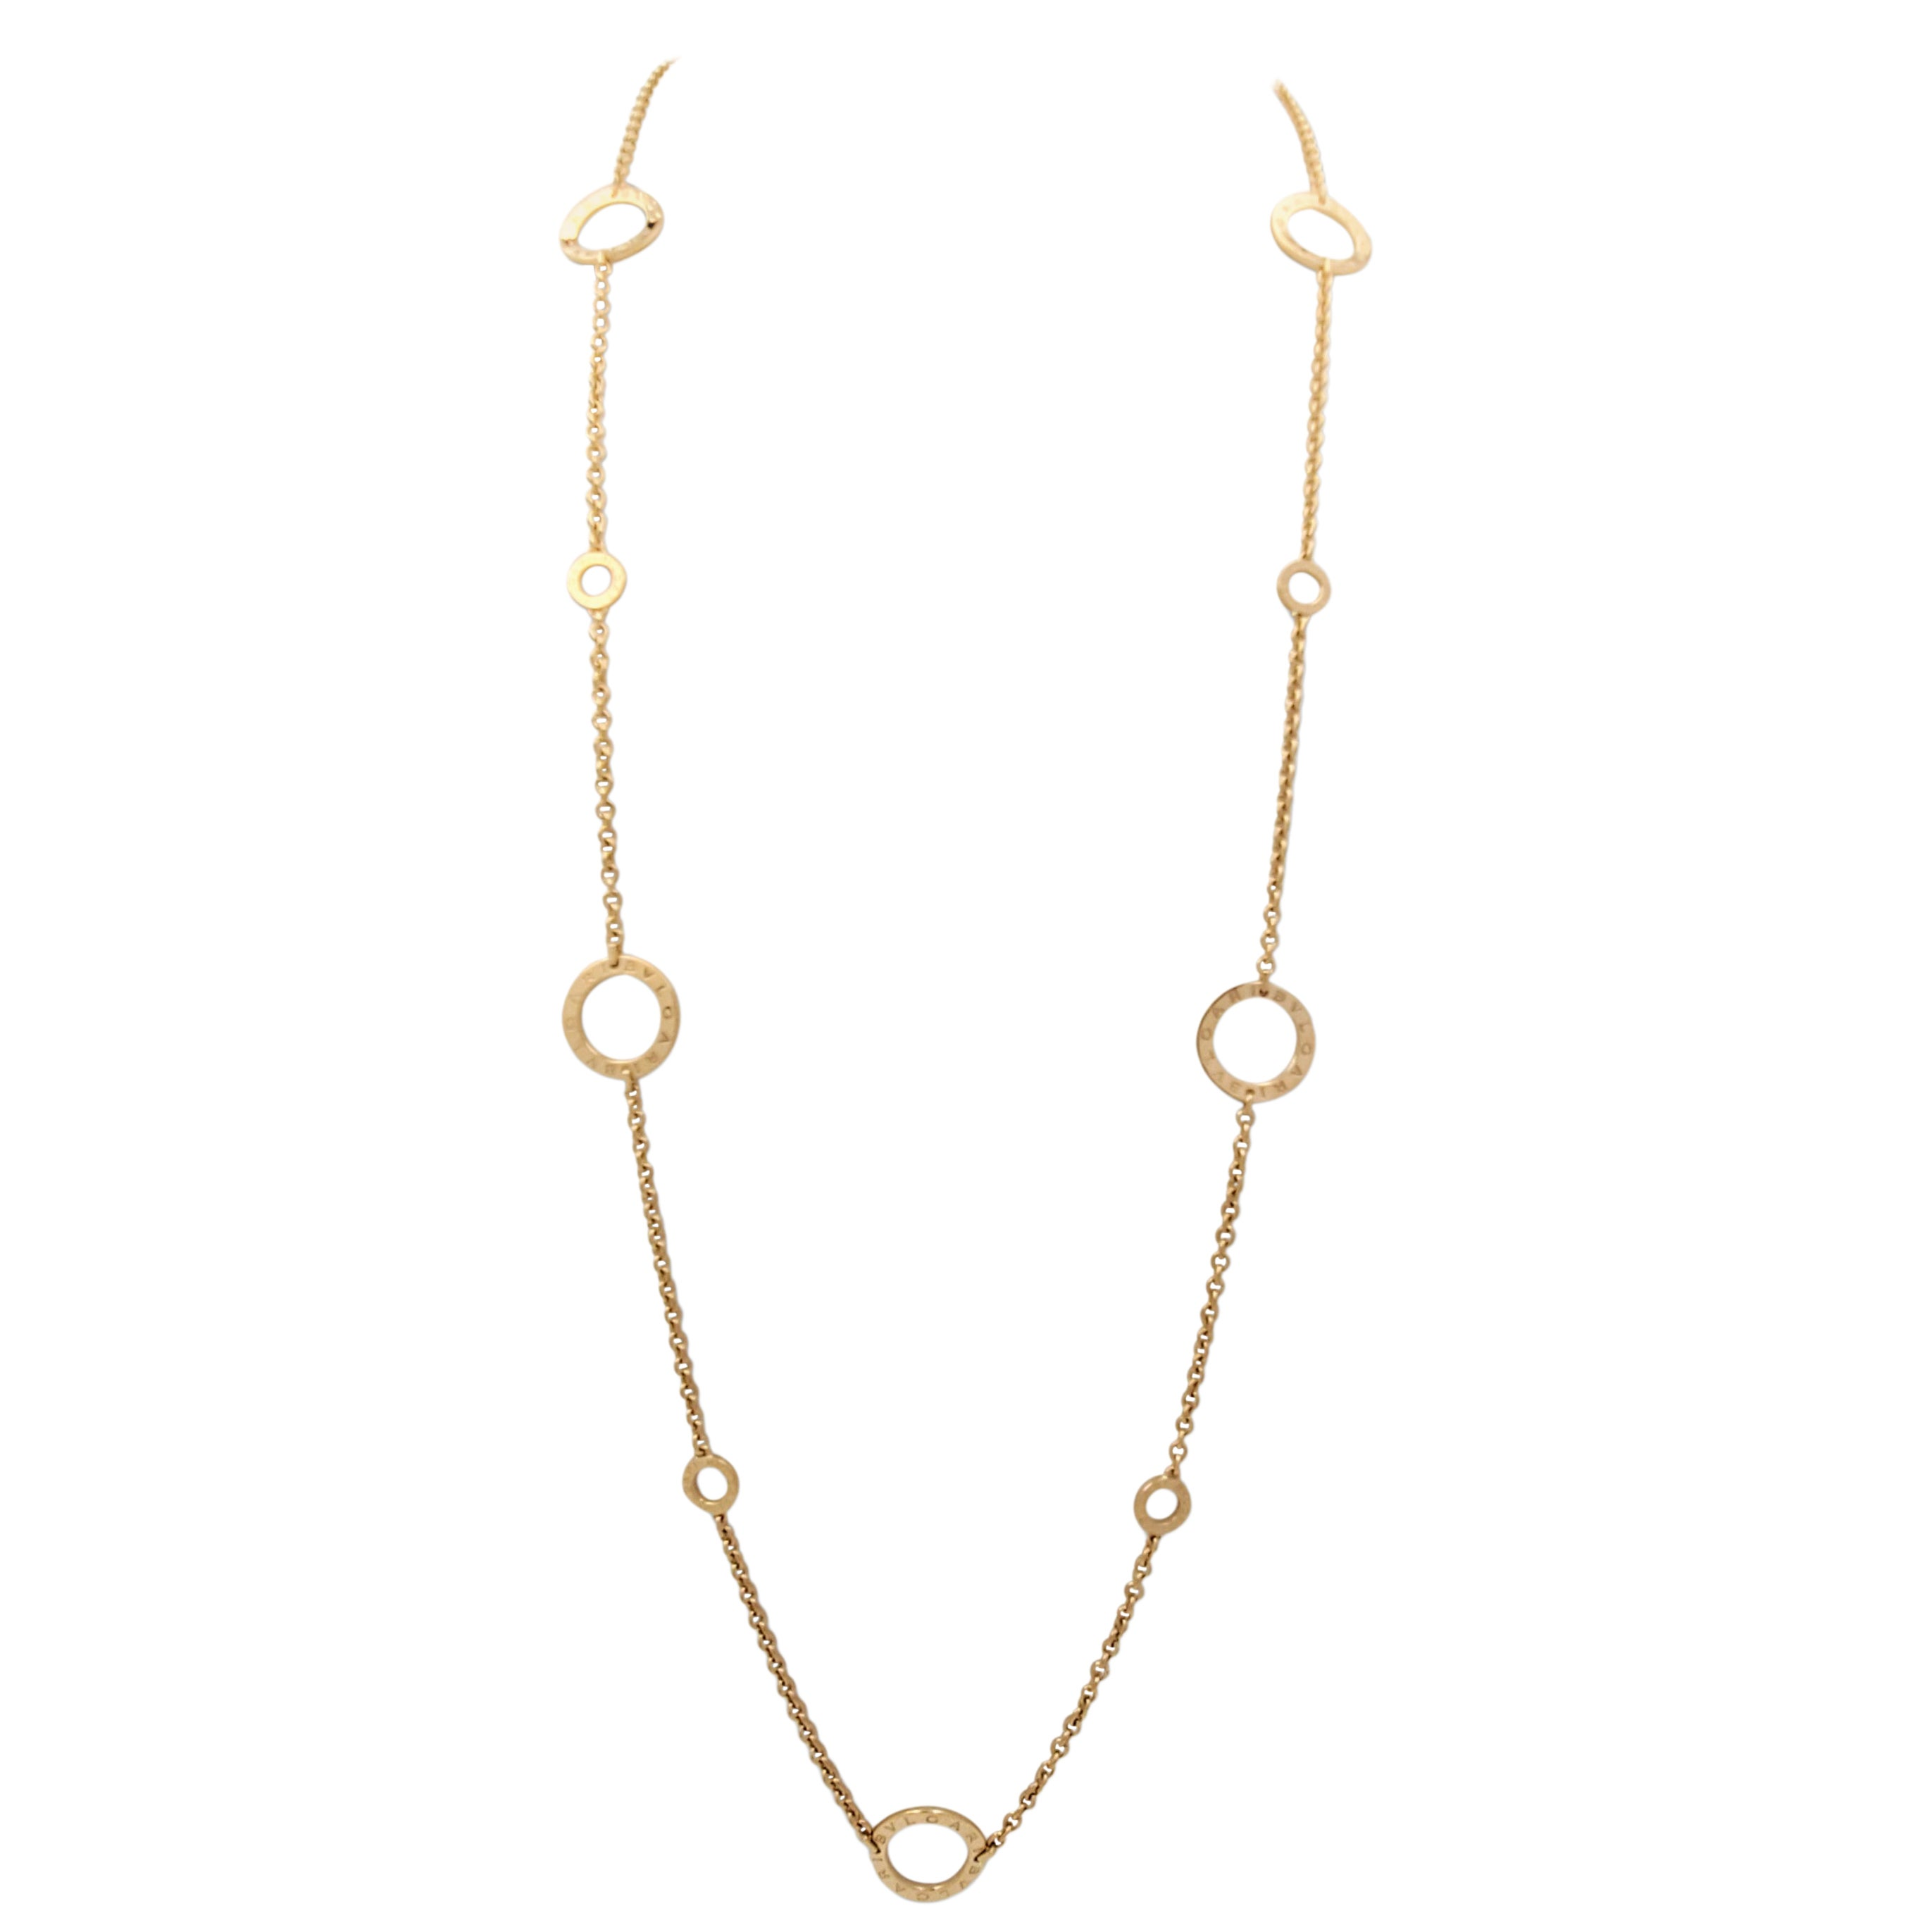 Bvlagri 'Bvlgari-Bvlgari' Signature Yellow Gold Long Chain Necklace